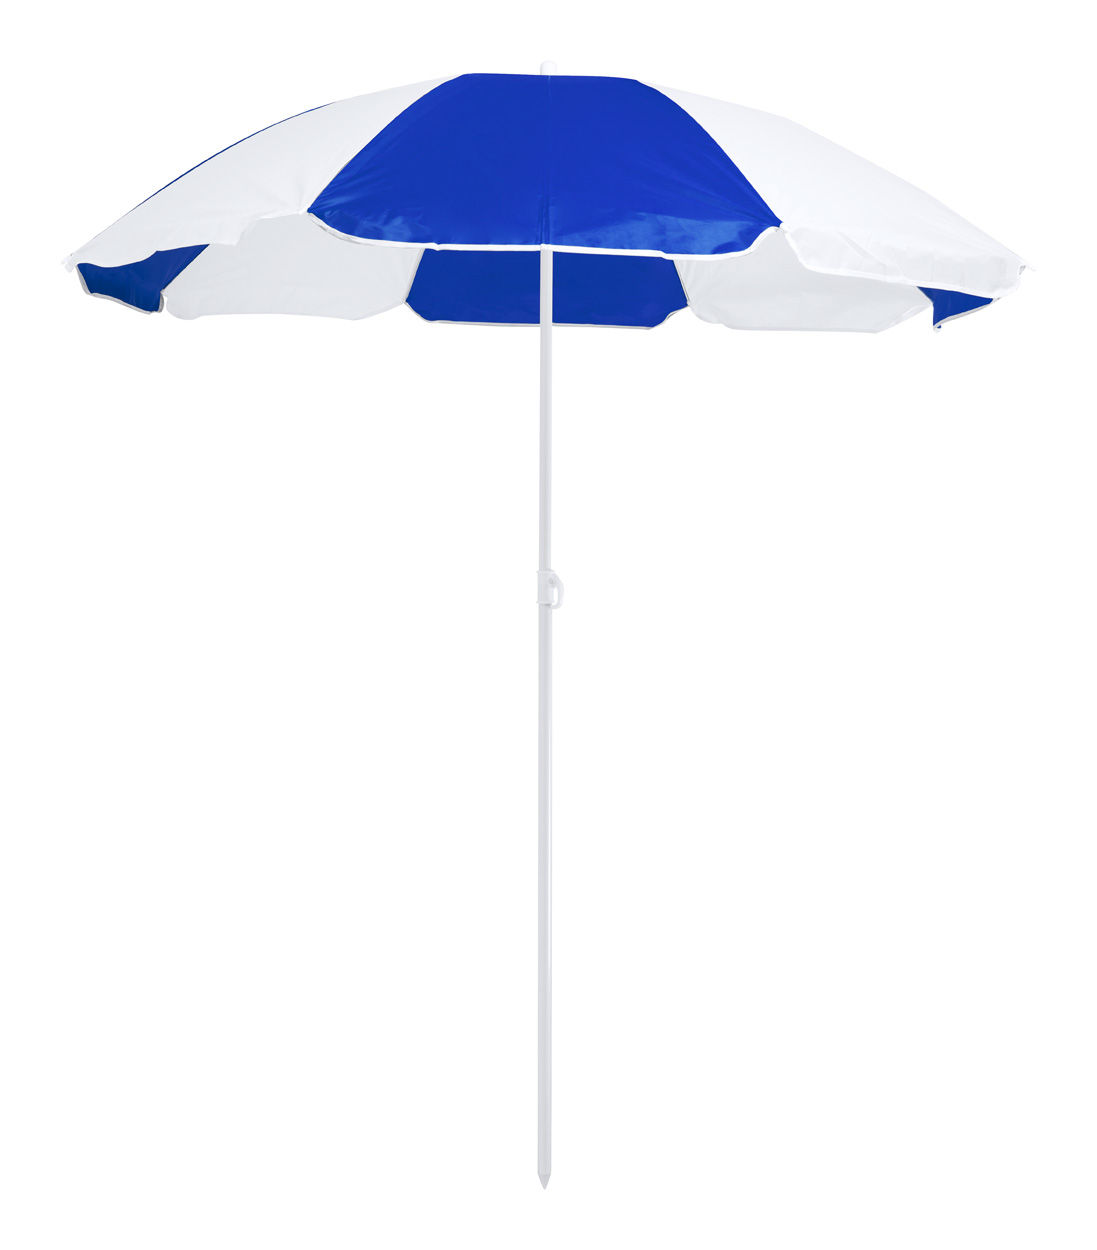 Nukel beach umbrella